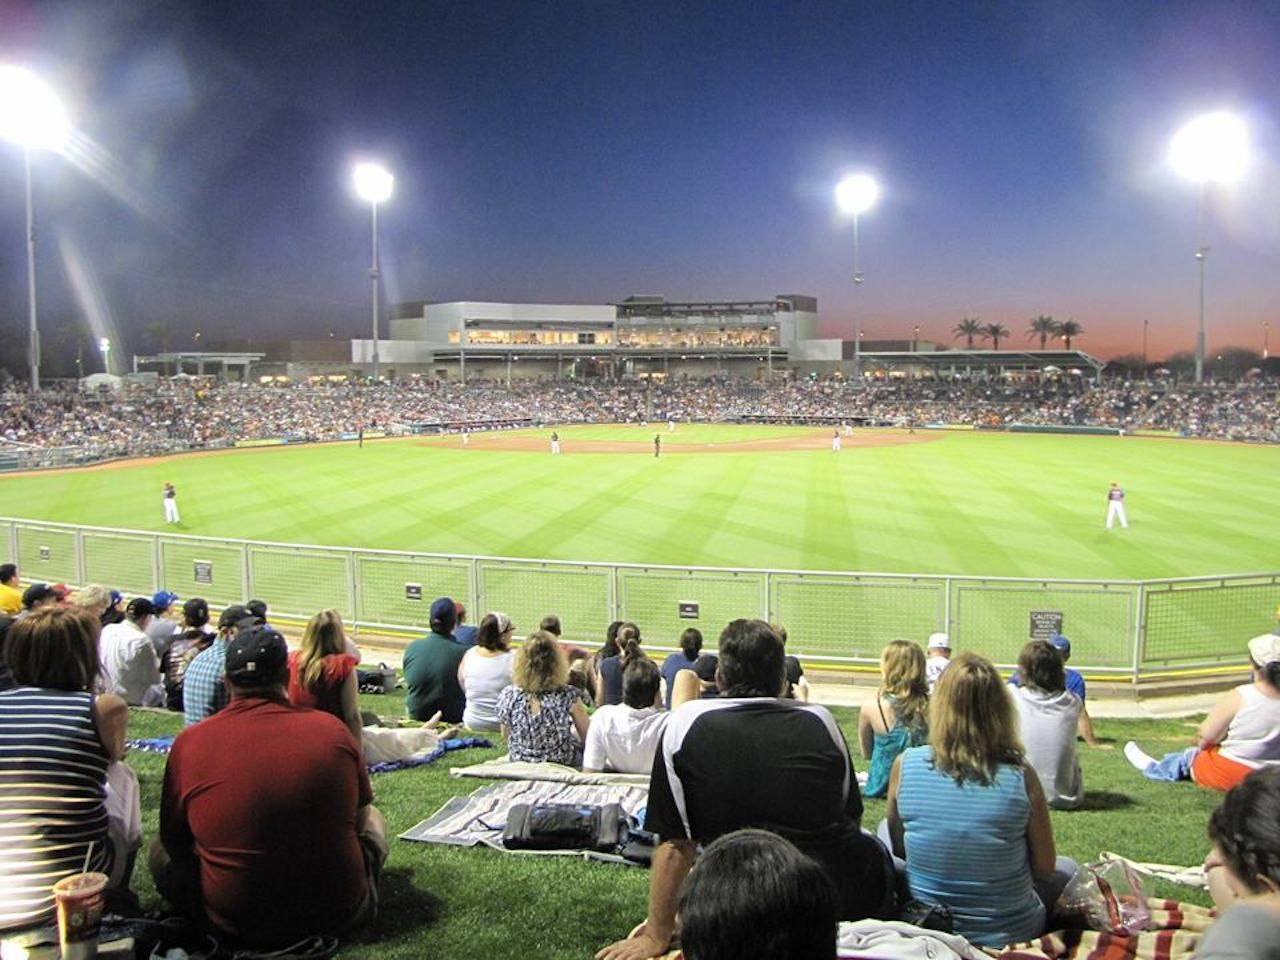 Cactus League baseball viewing (Spring Training)